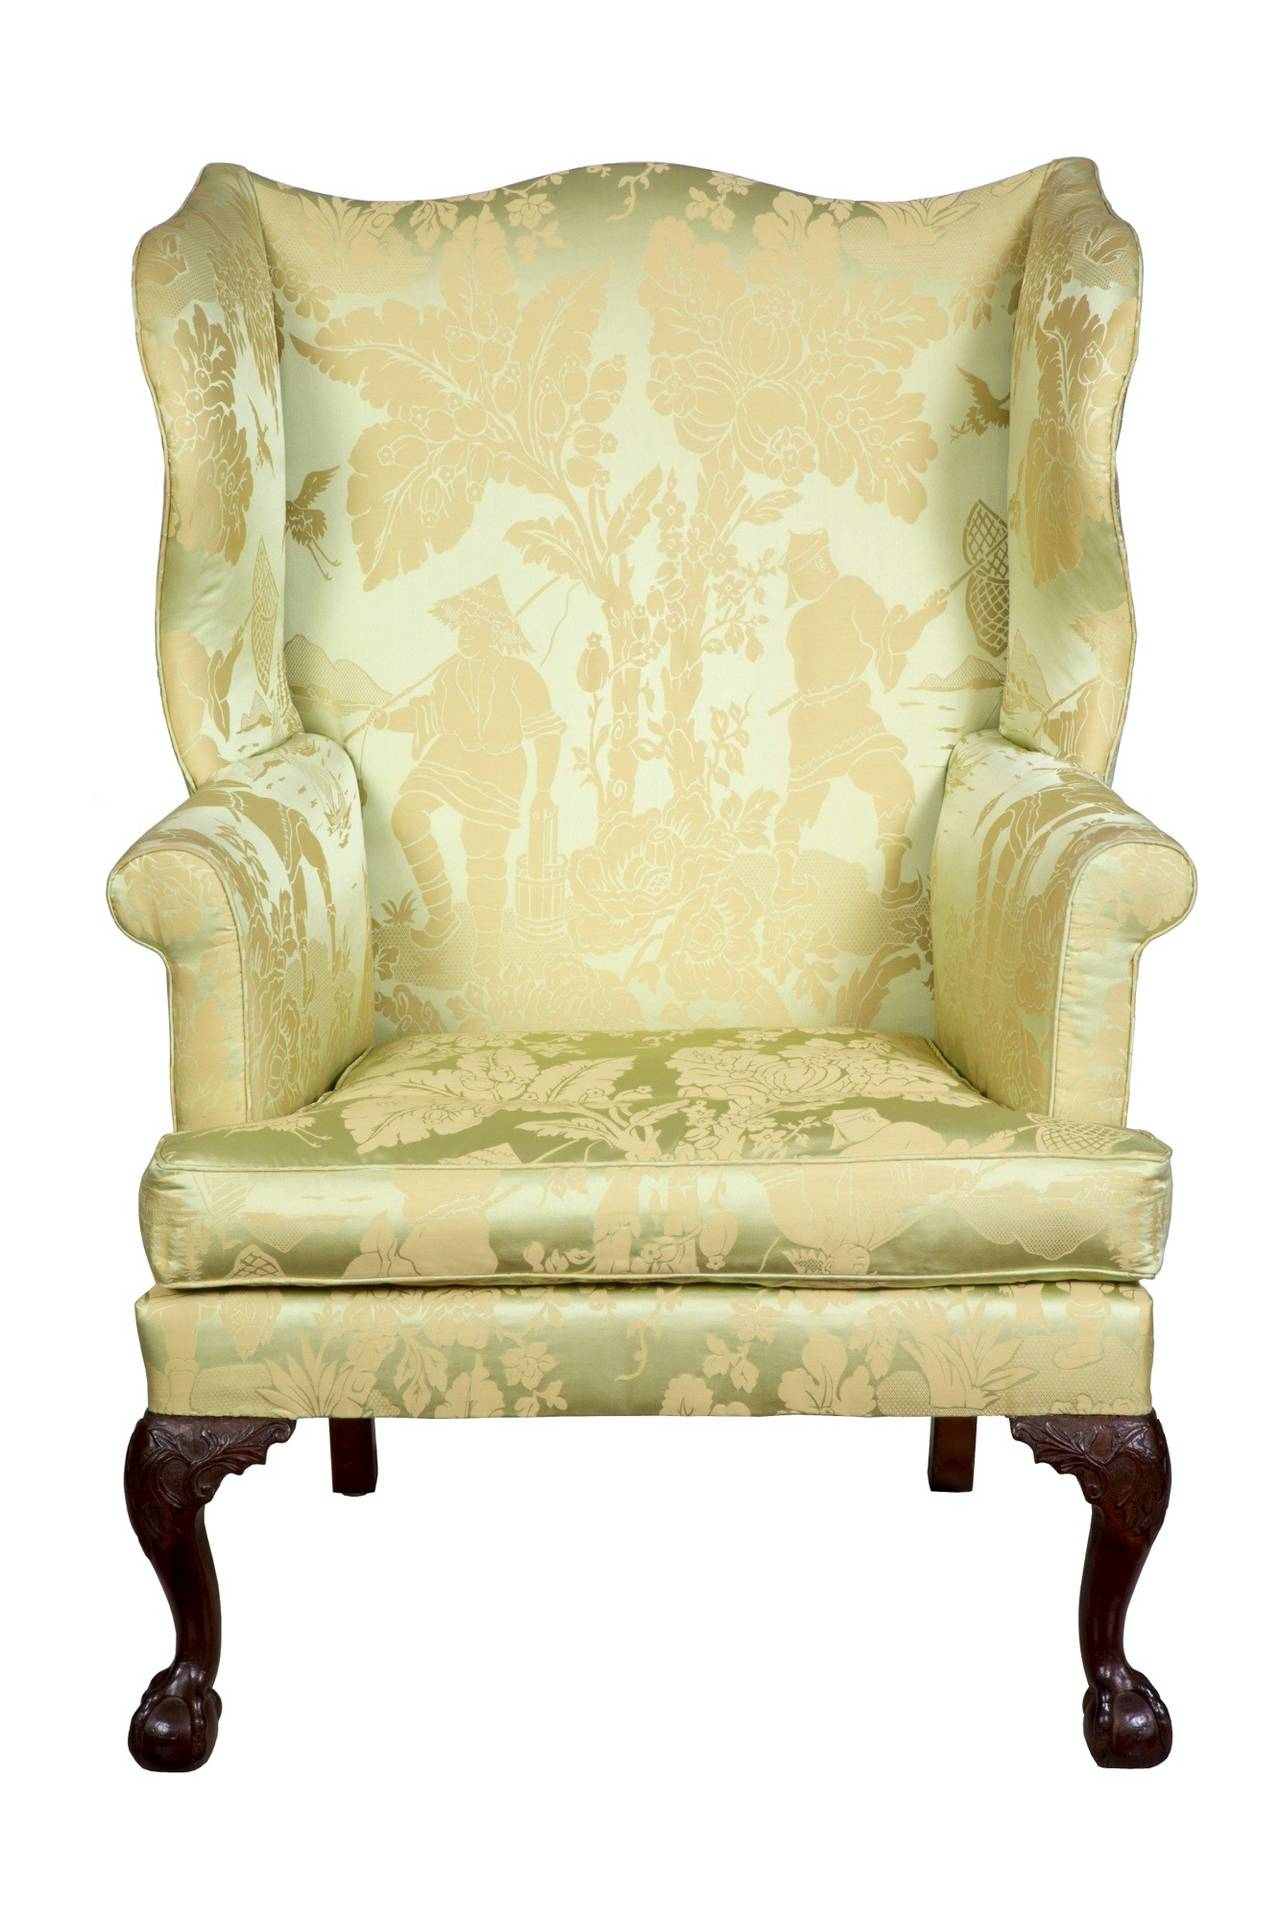 Beau This Is A Fully Developed Chippendale Wing Chair Of Good Size With  Beautifully Carved Claw And